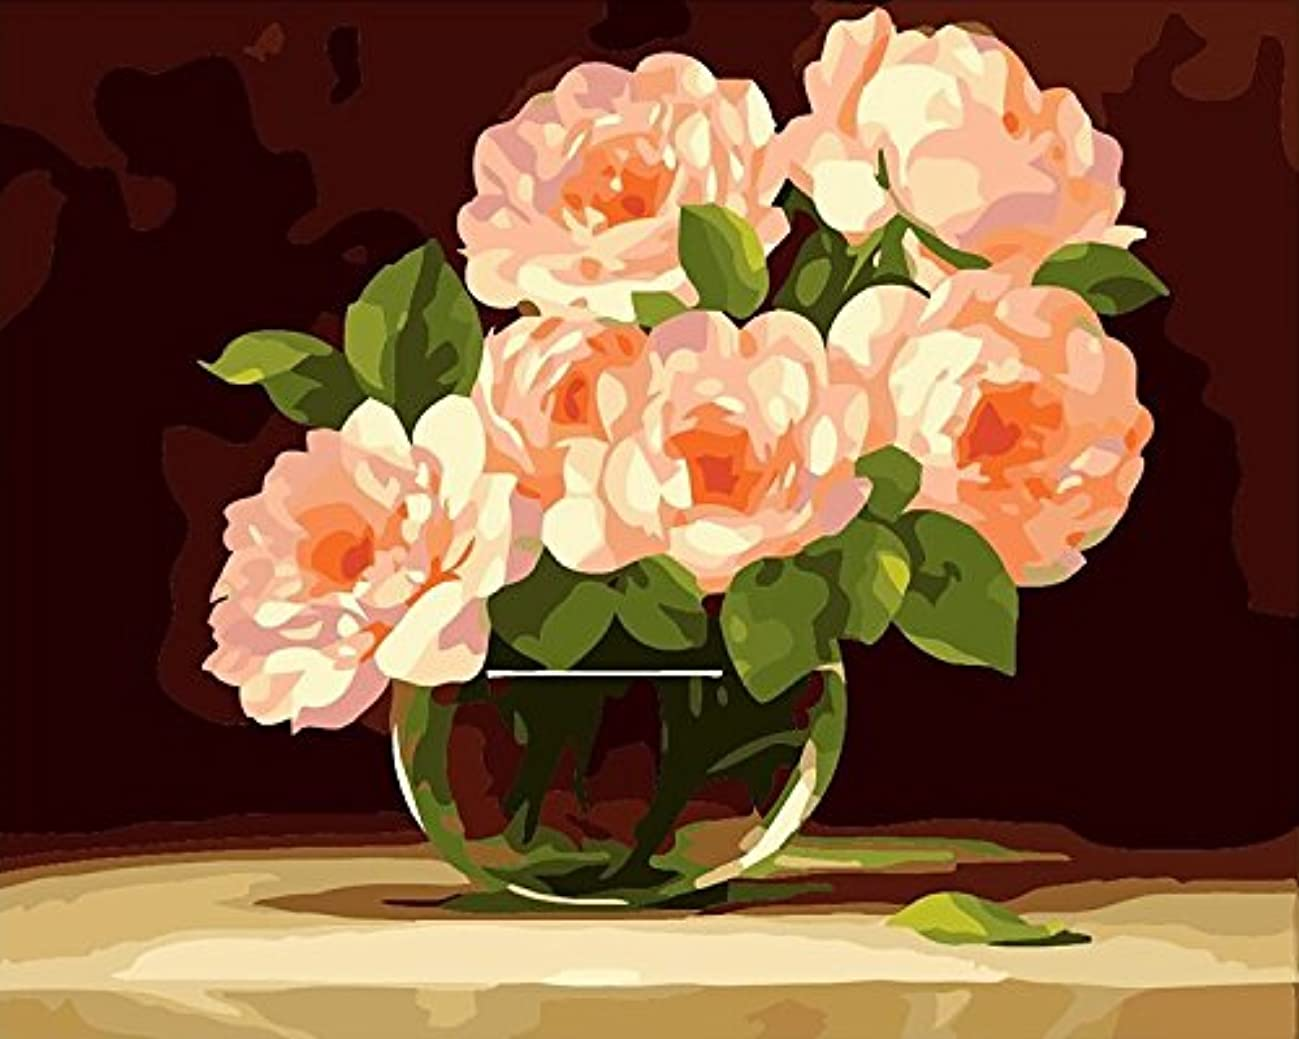 [Wooden Framed] Diy Oil Painting Paint by Number Kit for Adults Kids - Peony flowers in full bloom 16x20 inch